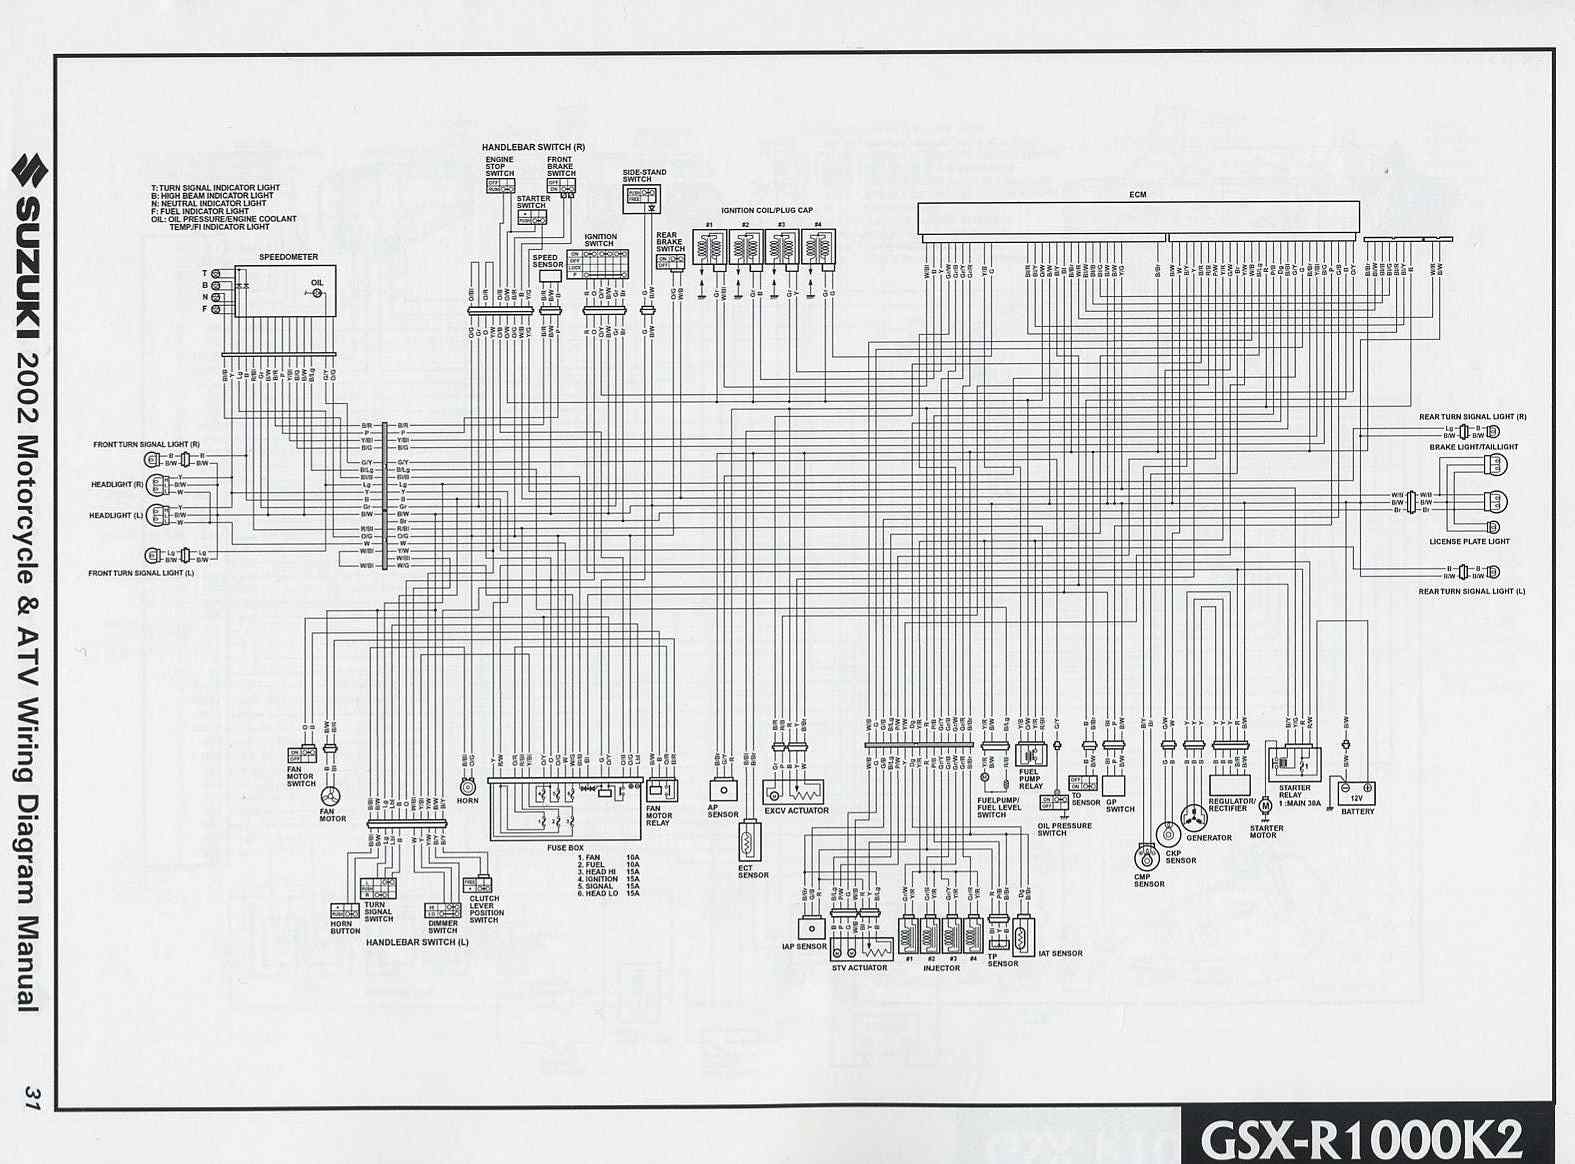 2001 Suzuki Gsxr 1000 Wiring Diagram Free Picture | Images ... on